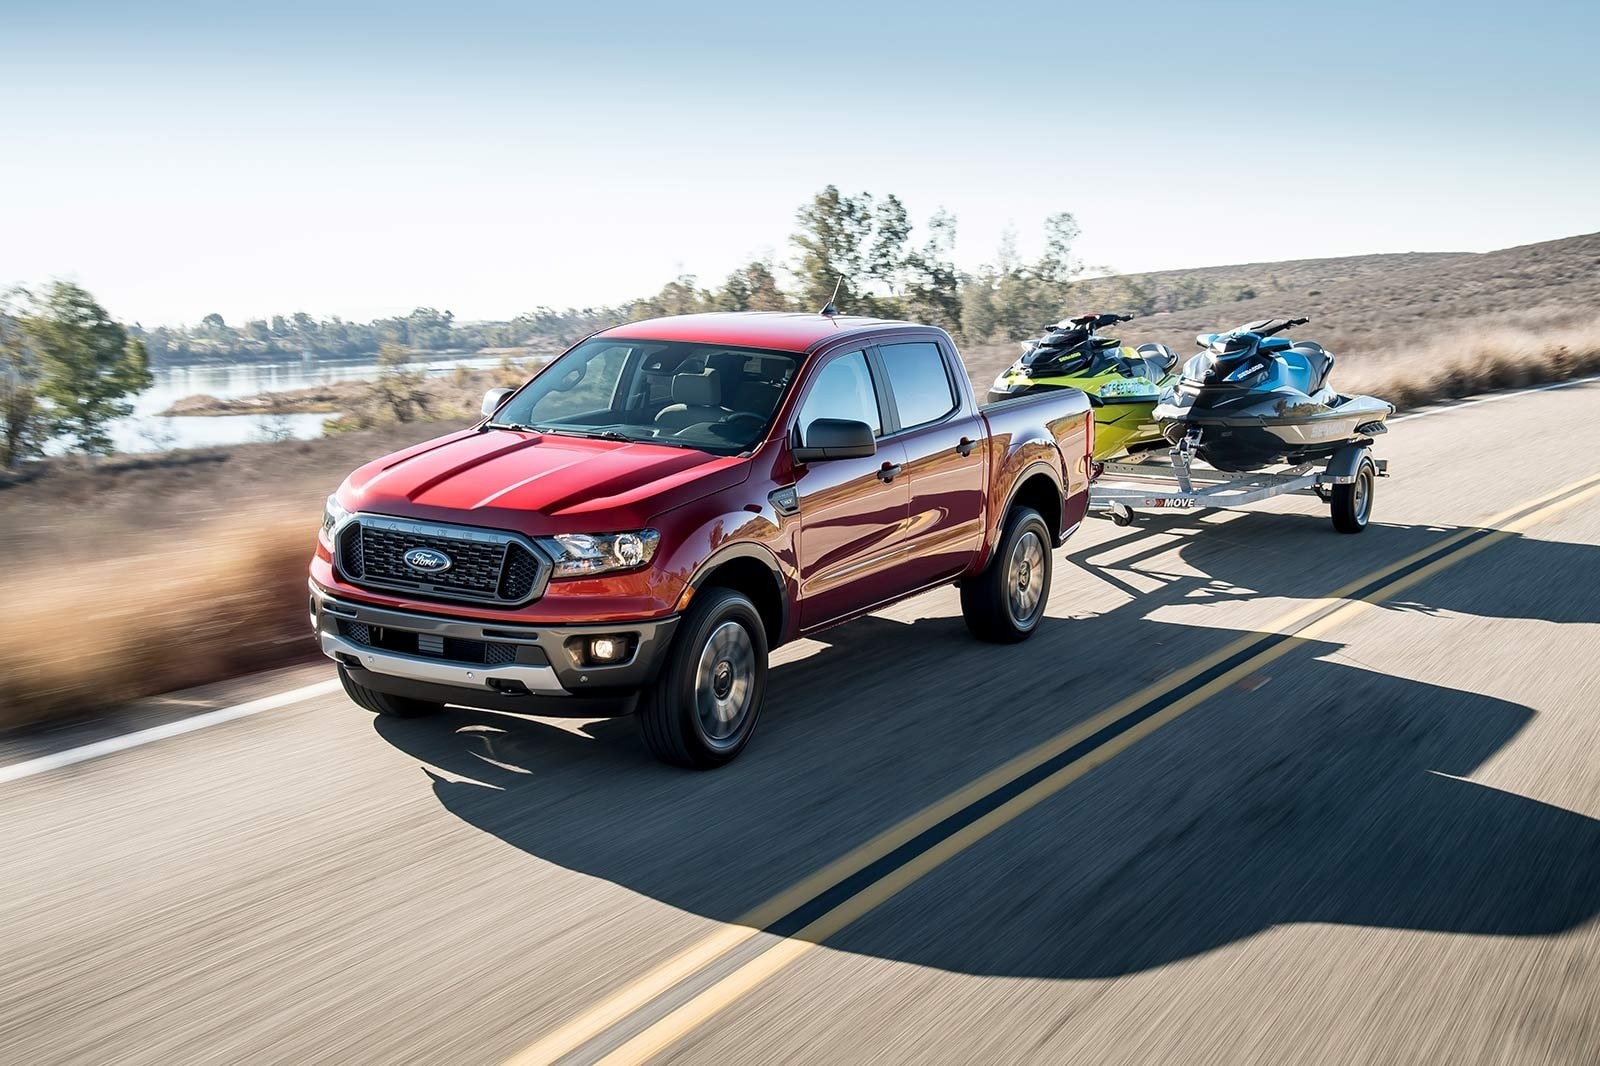 hight resolution of the ranger s maximum tow rating is high indeed all ranger cab and drive configurations are rated at 7 500 pounds with the optional tow package